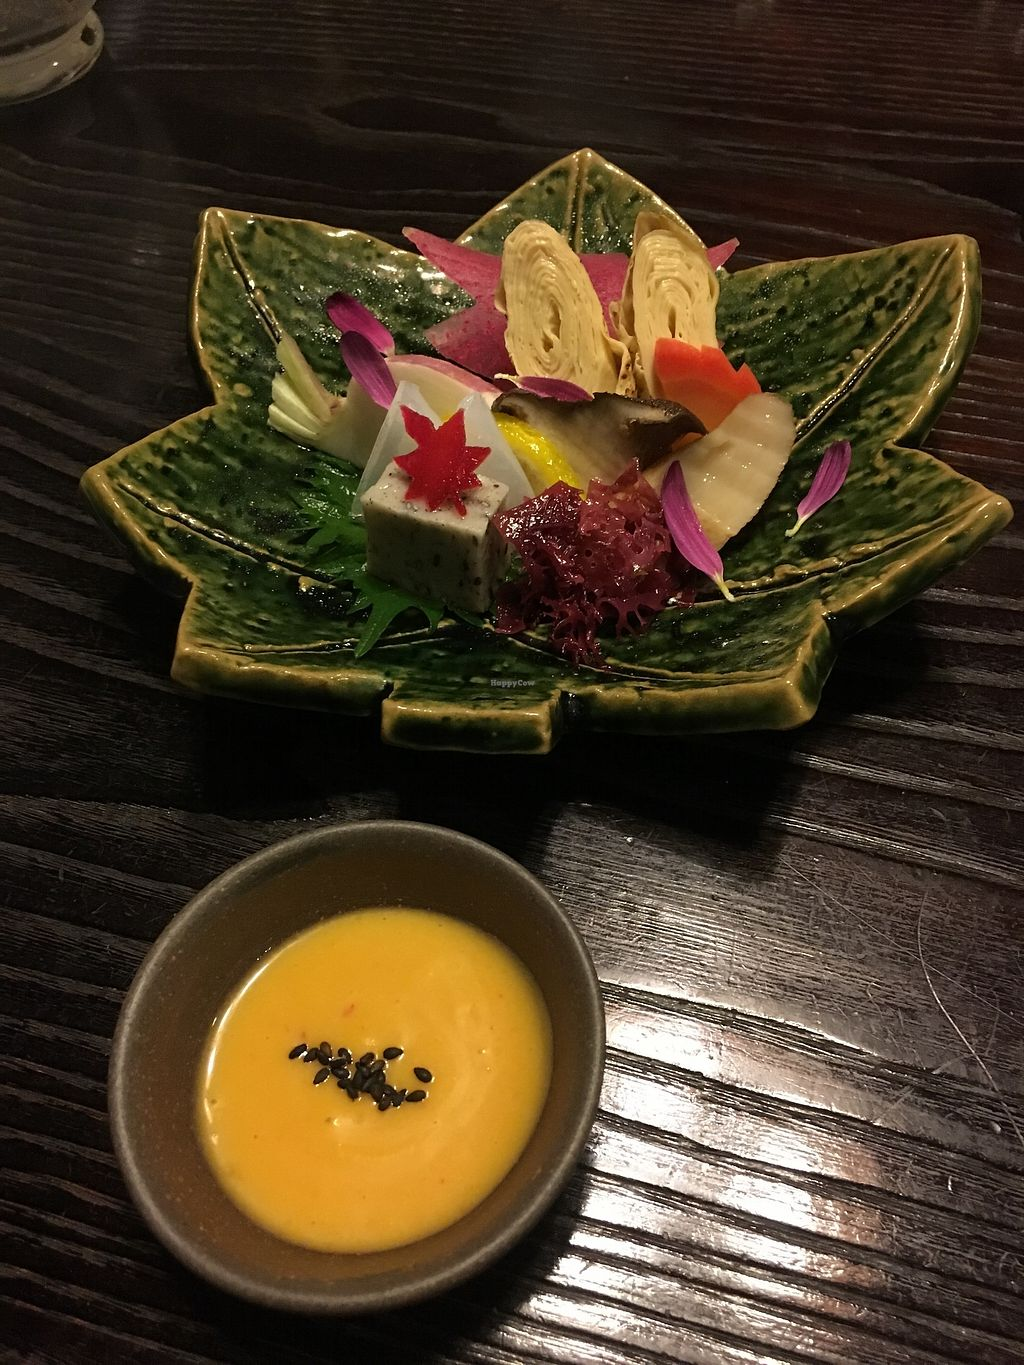 """Photo of Bon - Taito-ku  by <a href=""""/members/profile/form"""">form</a> <br/>So fun! <br/> November 25, 2017  - <a href='/contact/abuse/image/91/329174'>Report</a>"""